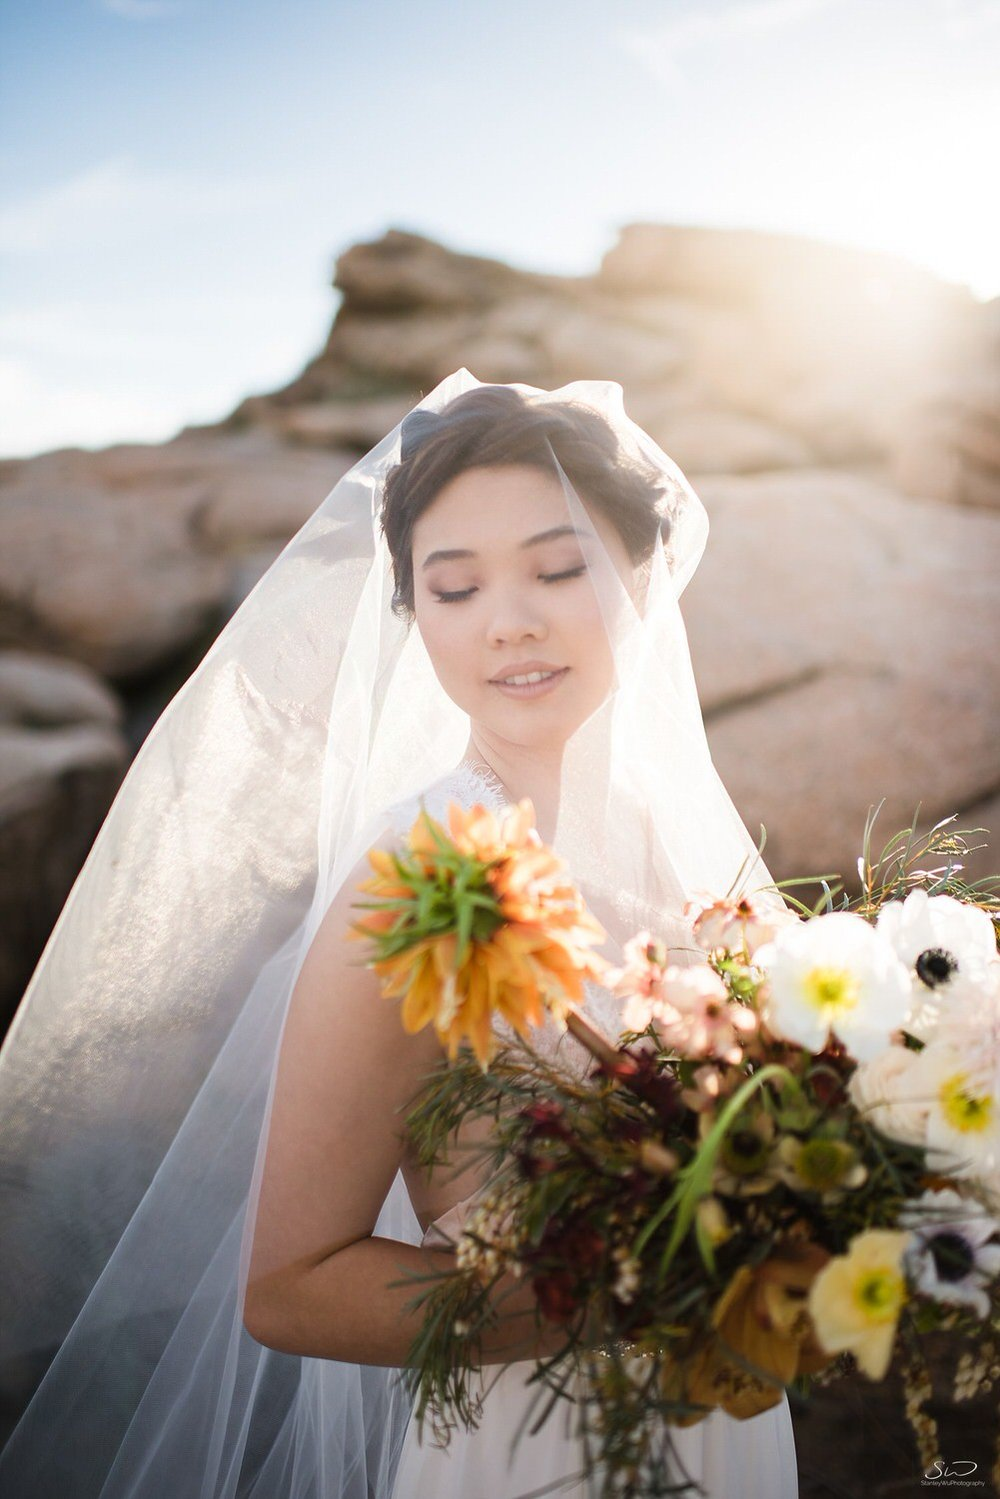 Beautiful sunlight streaming through bridal veil and wedding bouquet | Joshua Tree Desert Wedding, Engagement, Elopement Inspiration